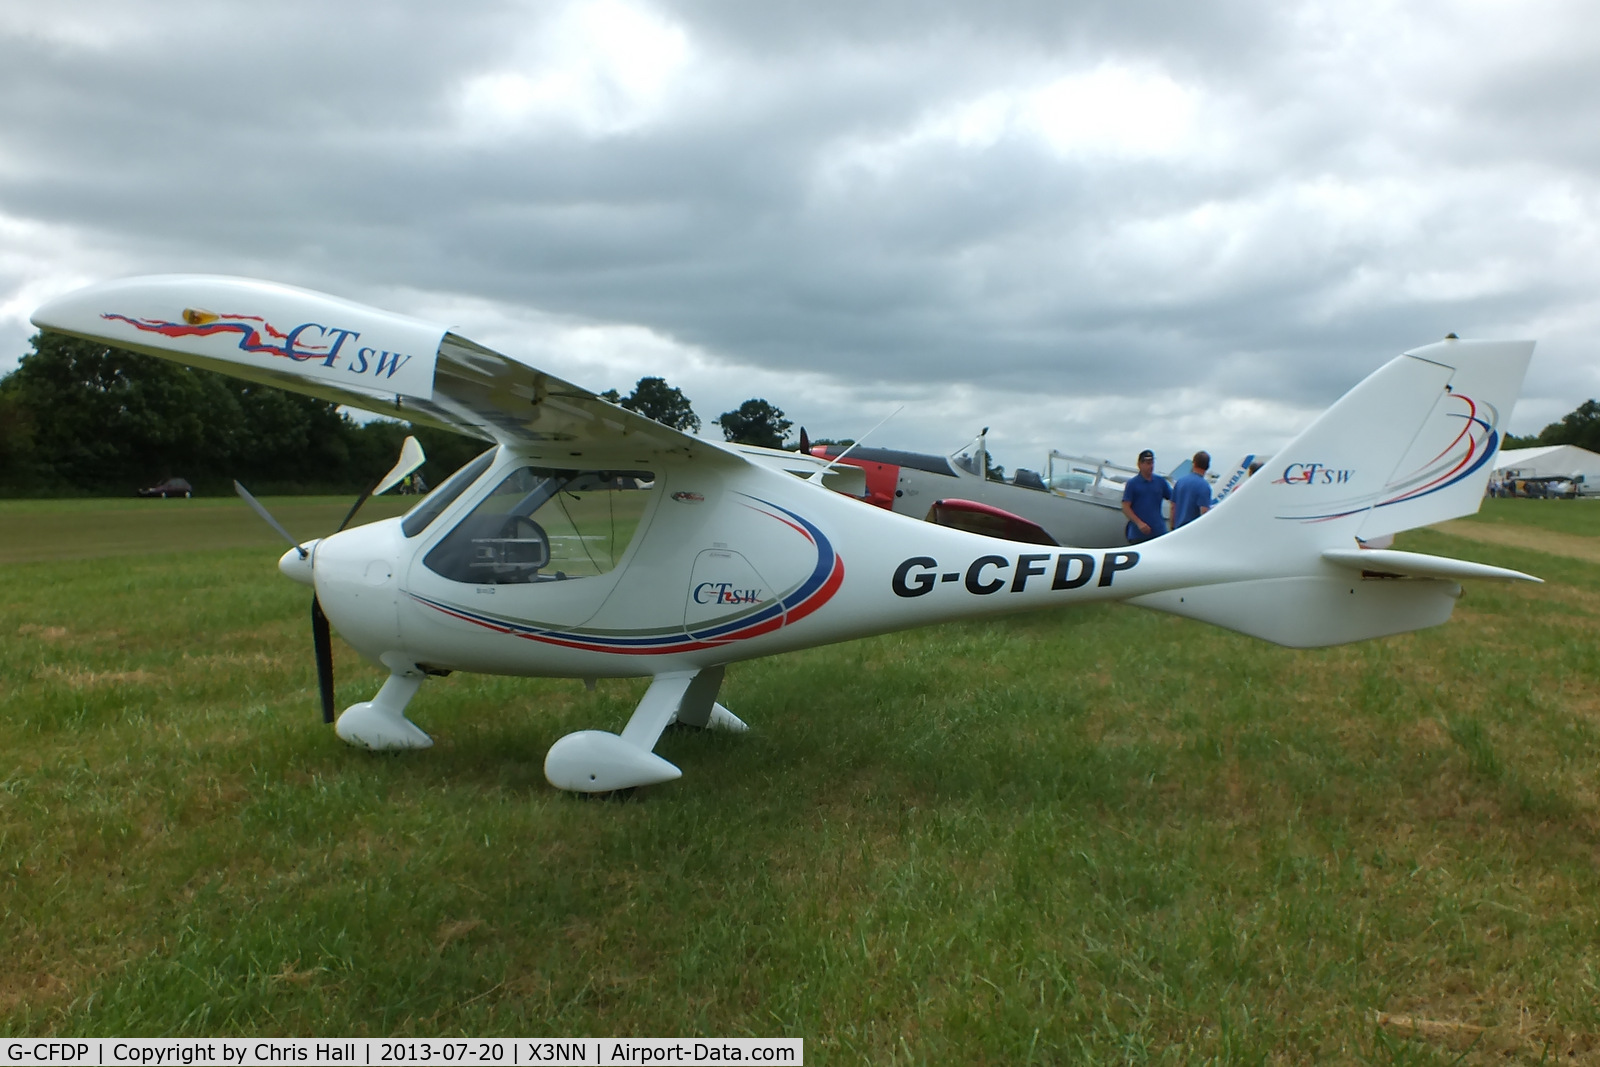 G-CFDP, 2008 Flight Design CTSW C/N 8367, at the Stoke Golding stakeout 2013